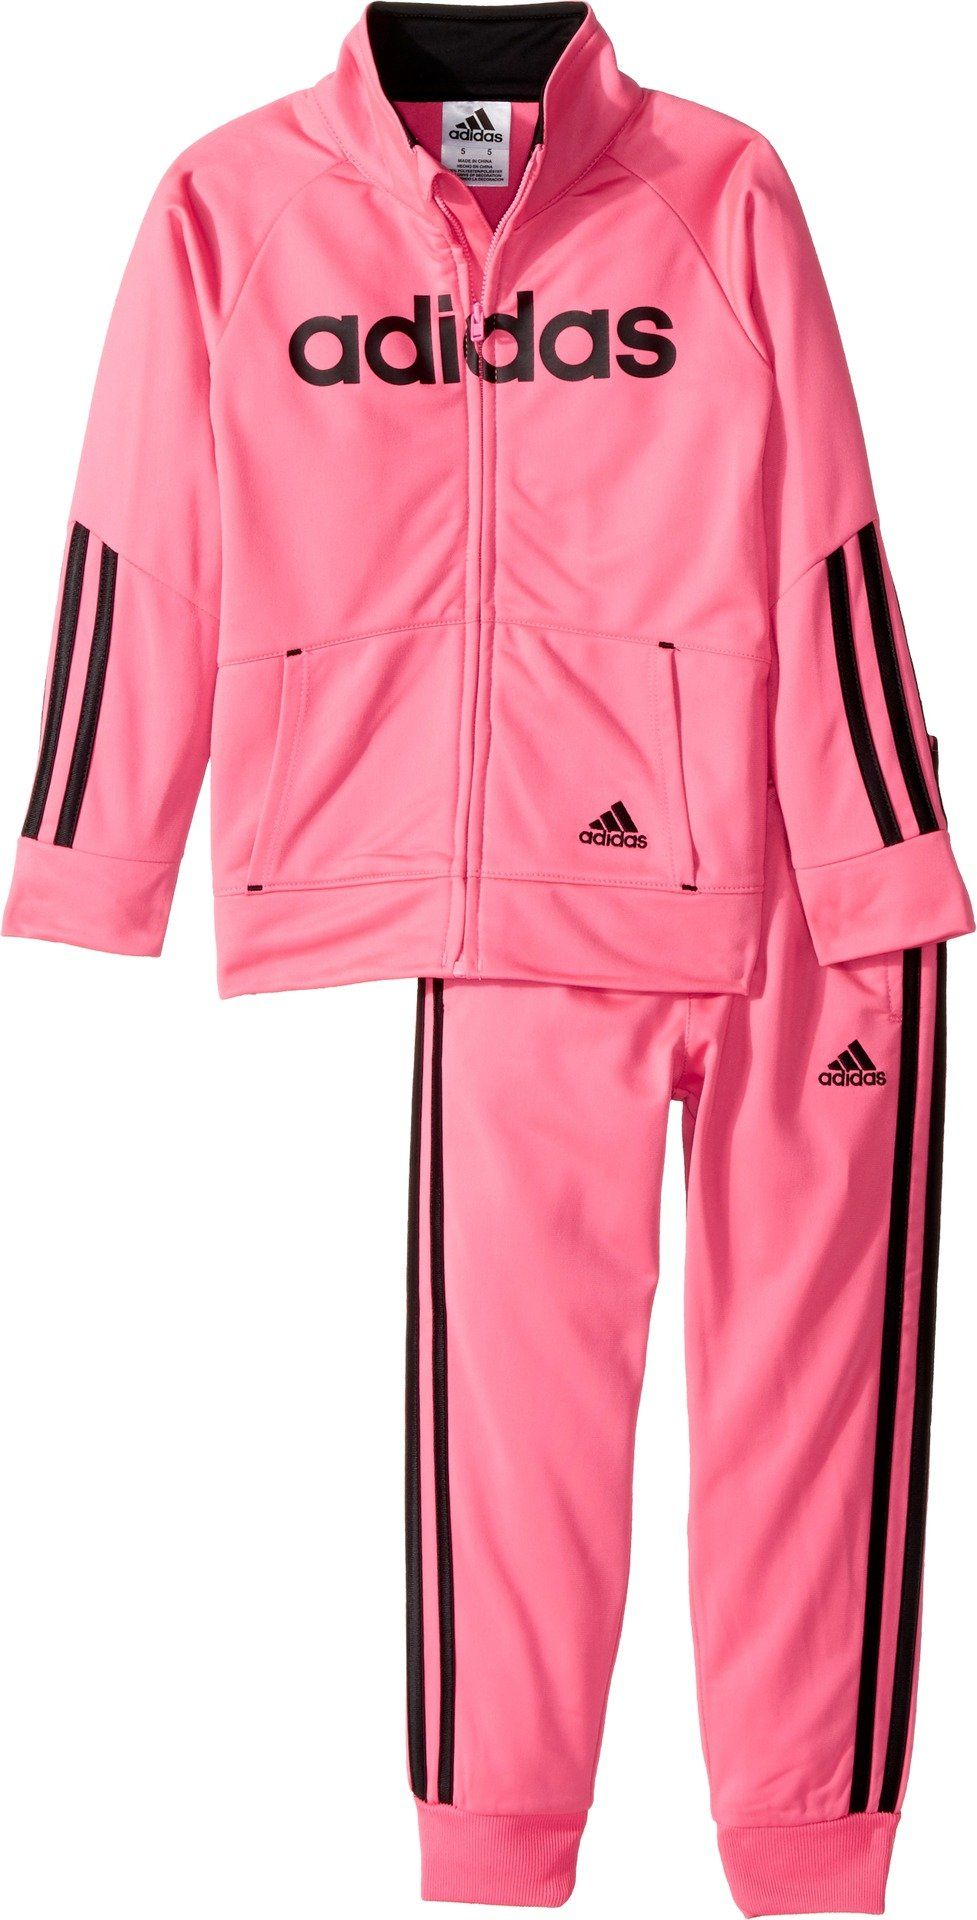 d1cf53b5b adidas Kids Baby Girl s Linear Tricot Jacket Set (Toddler Little ...